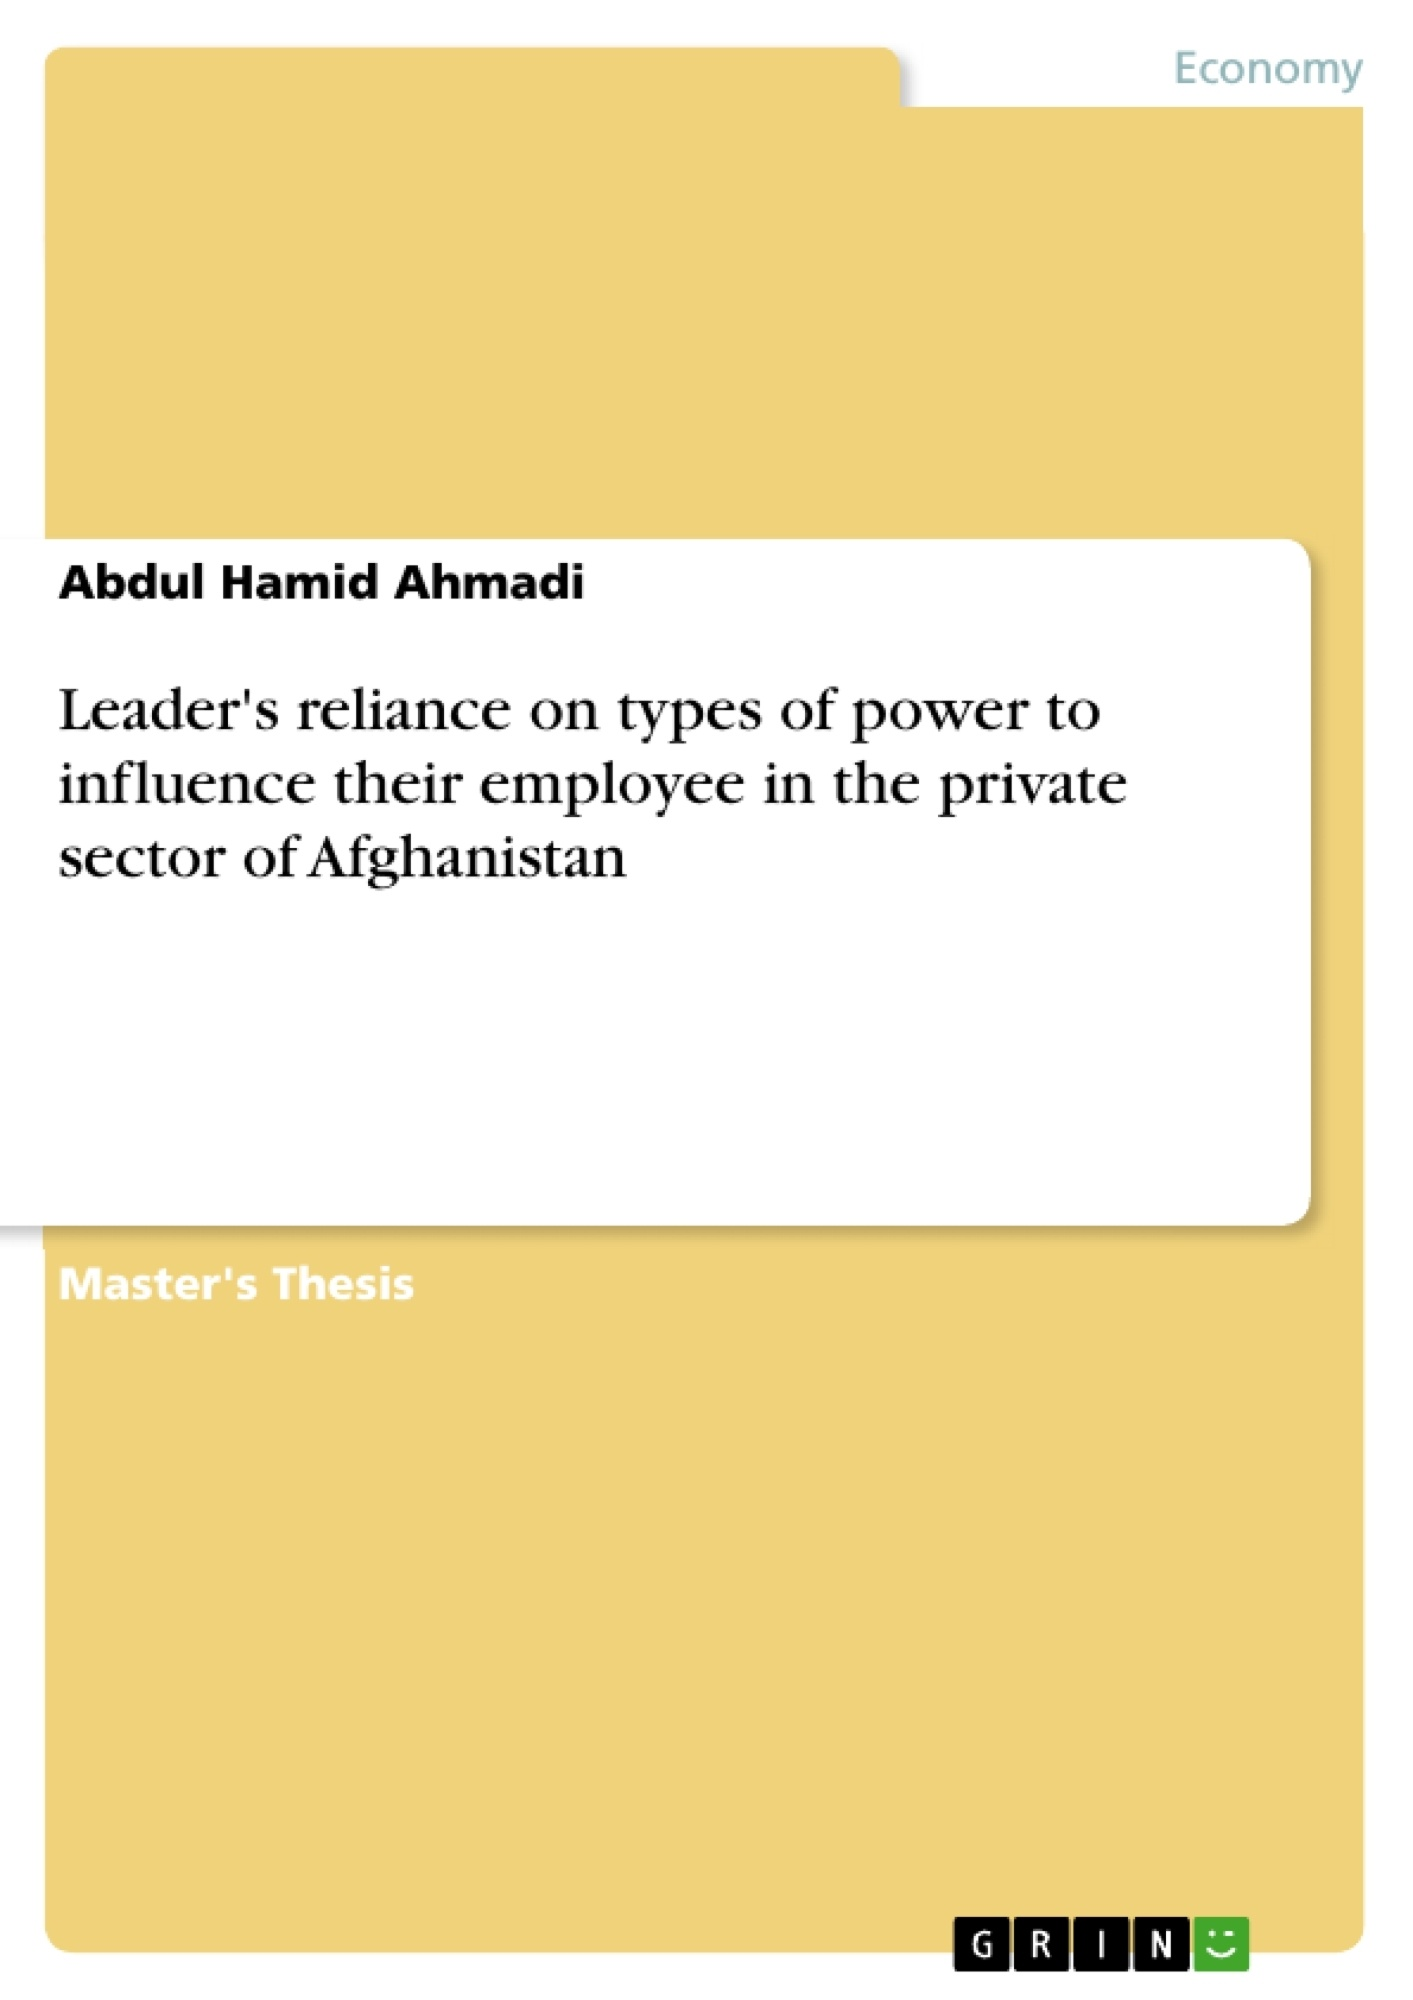 Title: Leader's reliance on types of power to influence their employee in the private sector of Afghanistan